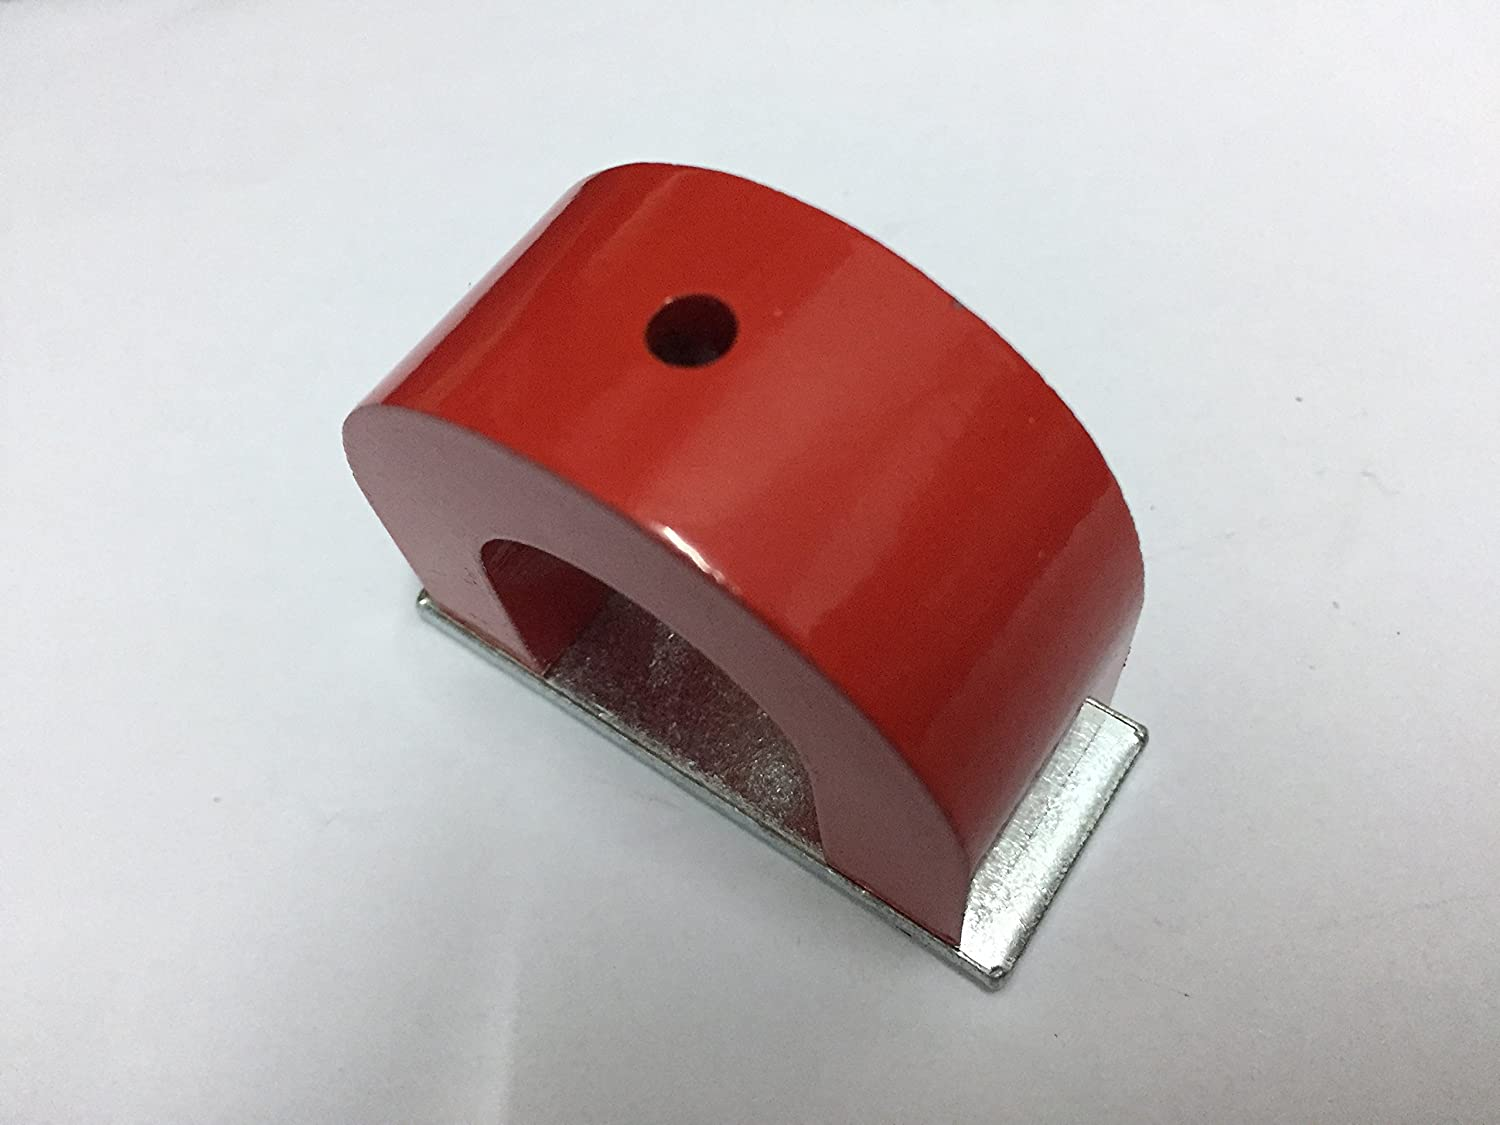 AOMAG Strong Red Alnico Horseshoe Magnet 40 lb Capacity Pull Power 12 Oz Tool Magnets